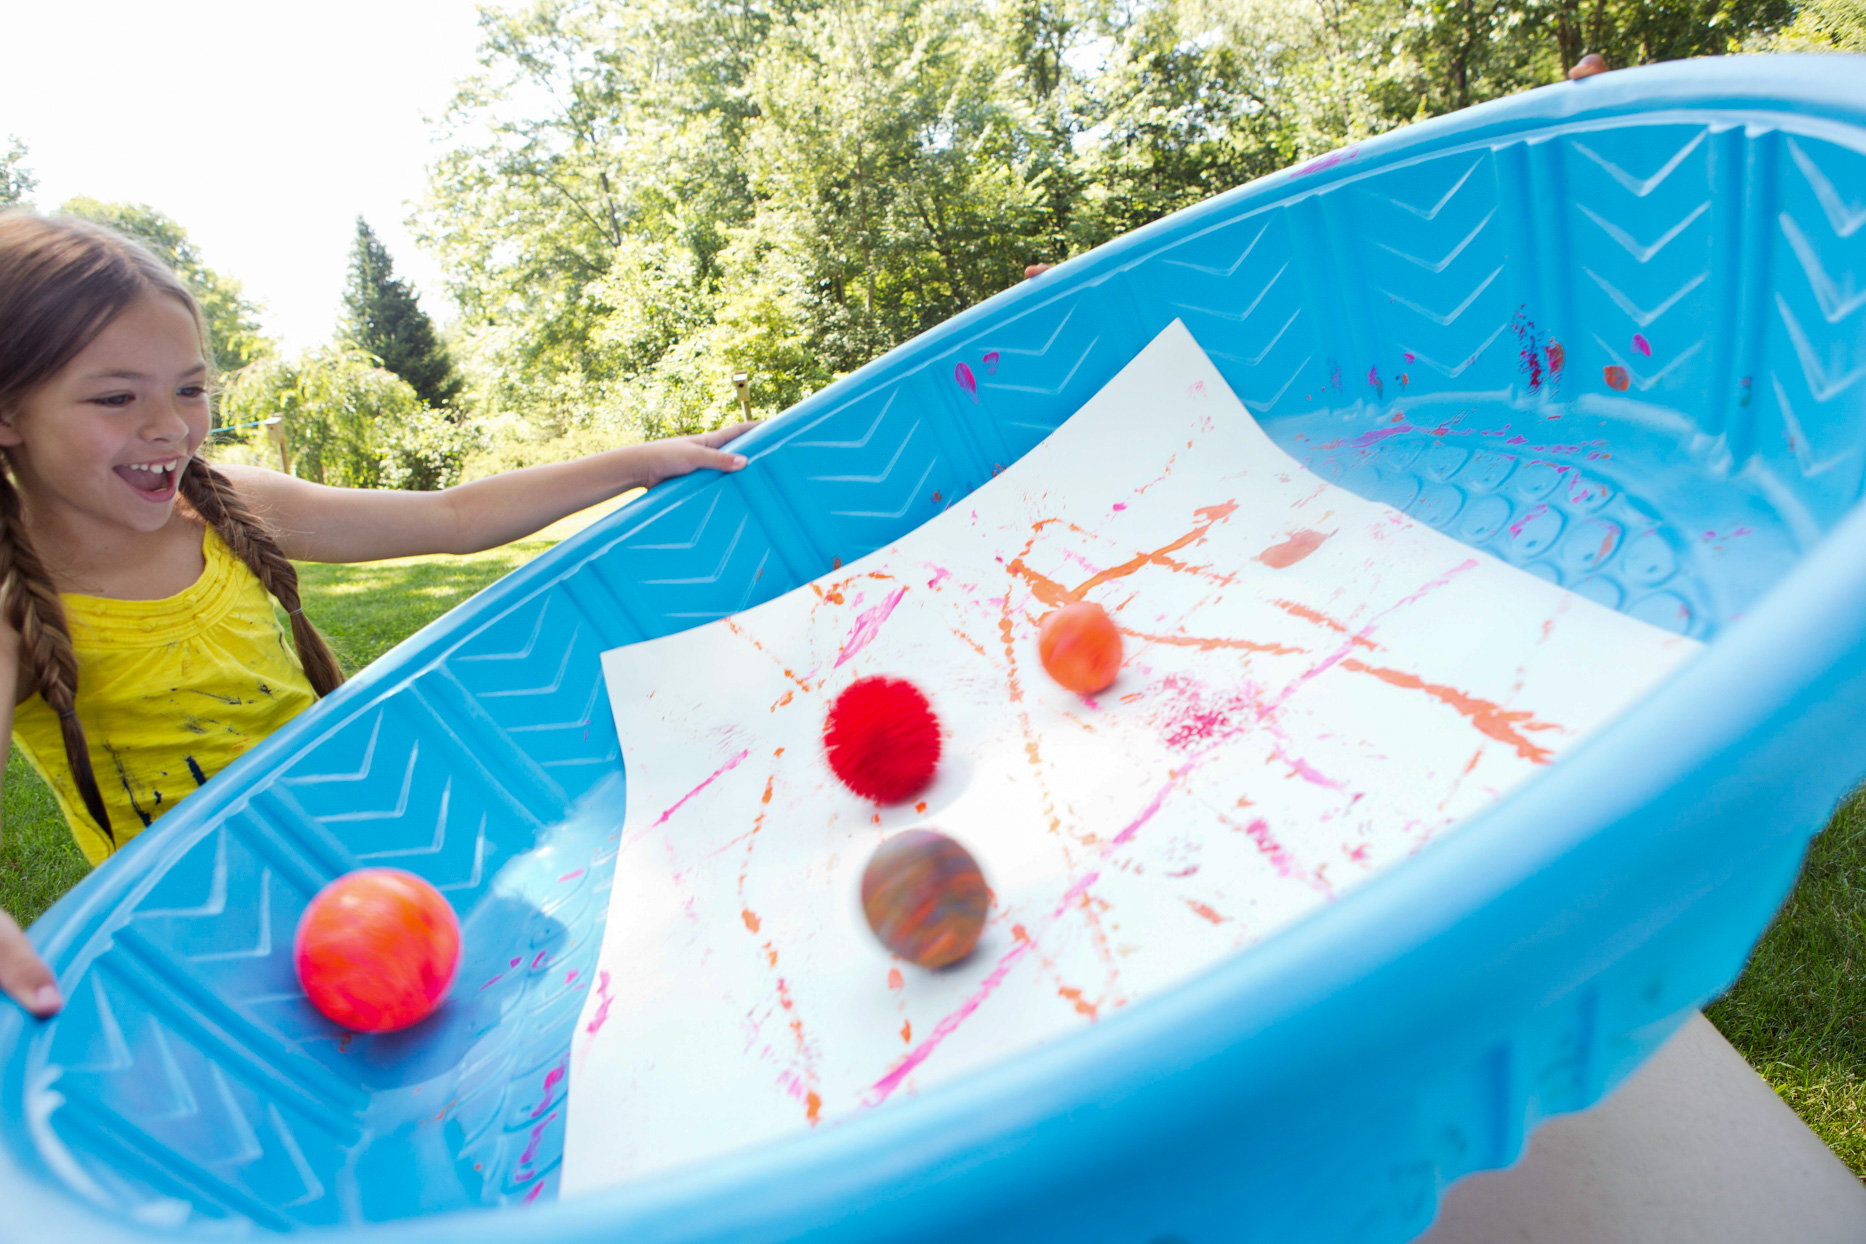 Girl tilting plastic pool with painted balls and paper